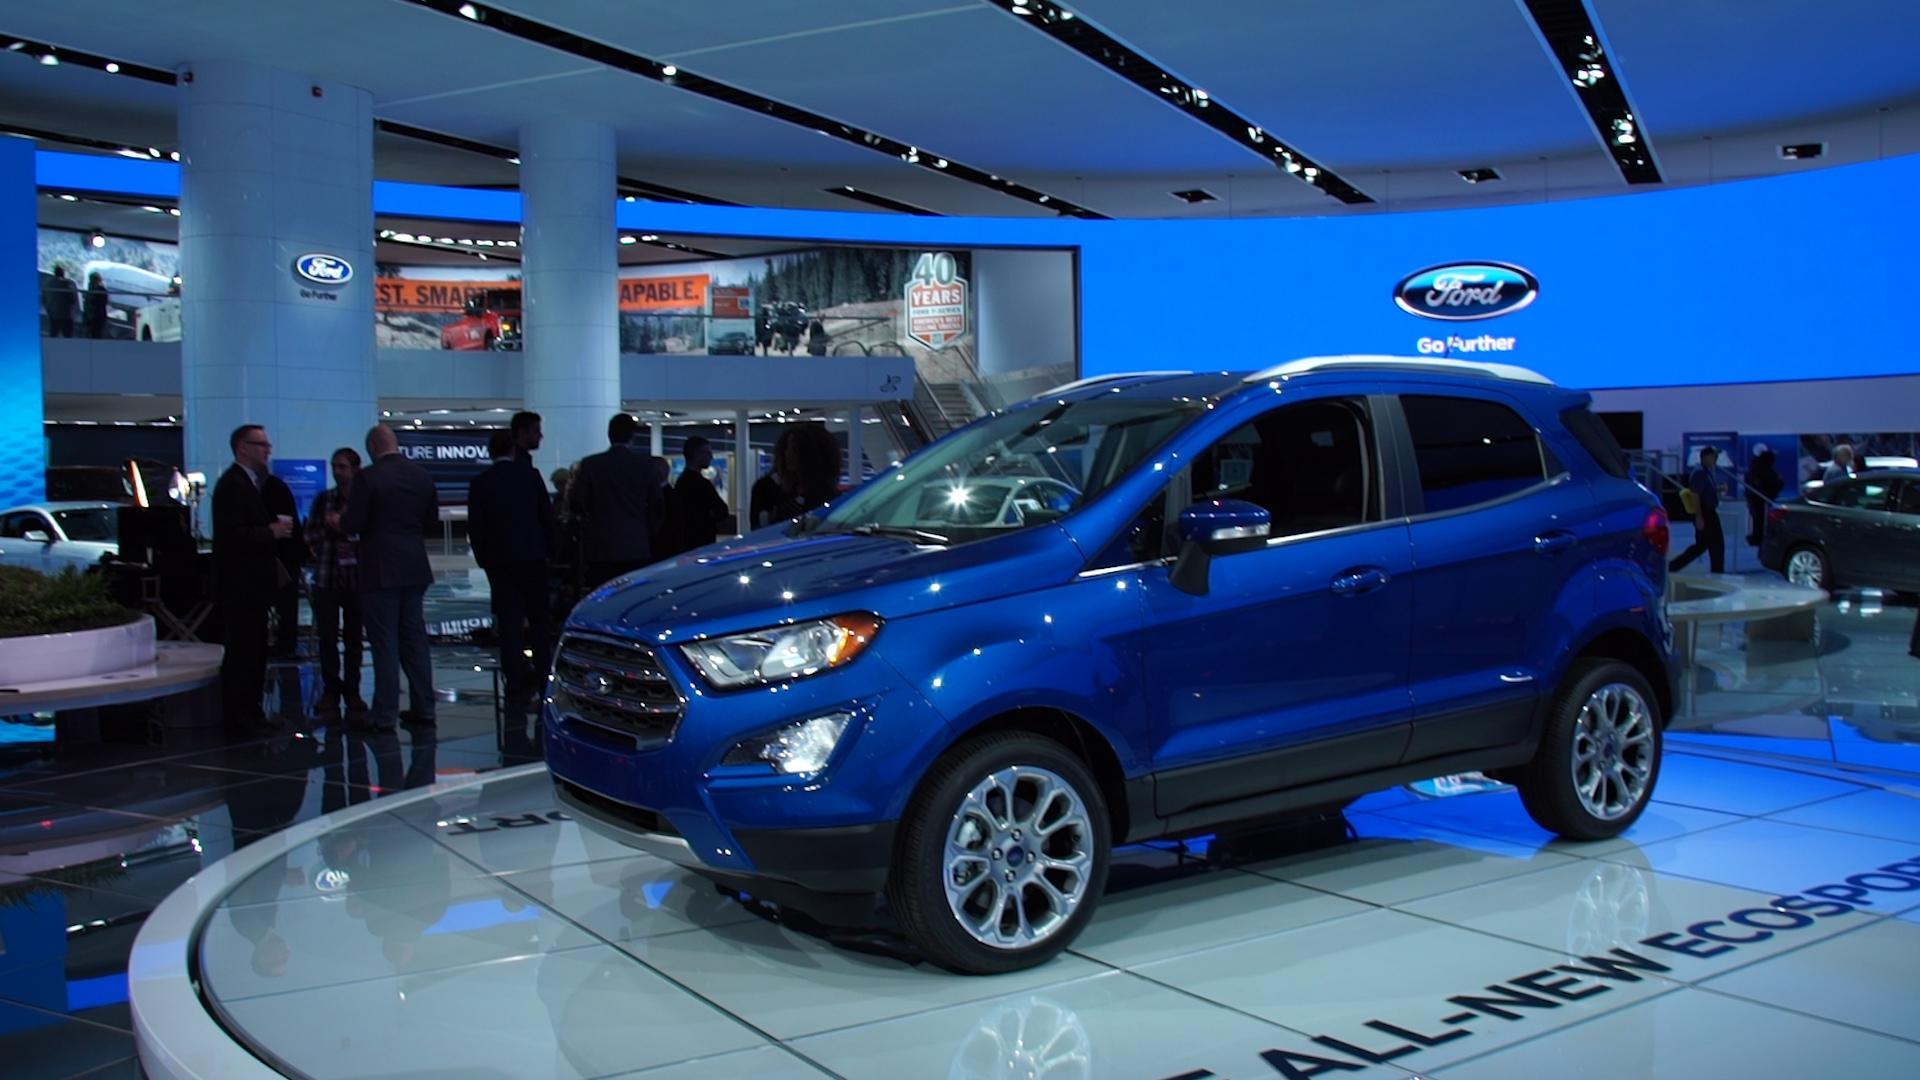 Length Of Ford Ecosport Car